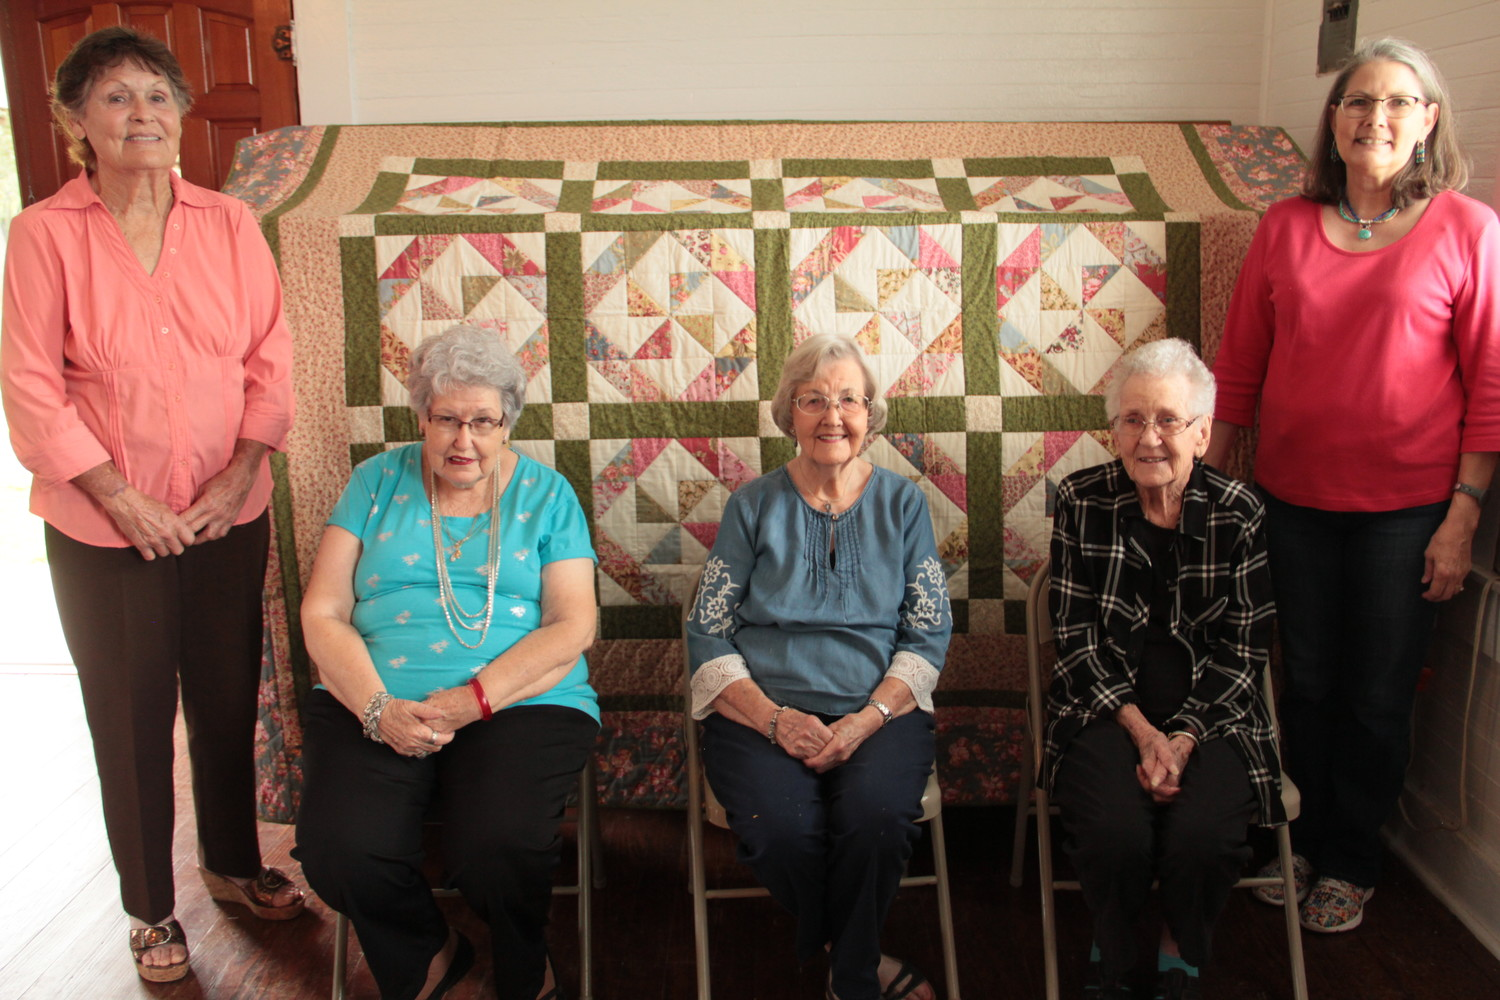 The Happy Quilters are, from left, Margie Rice, Ruth Newberry, Charlene Anderson, Janyce Littlefield, and Terri Porter. You can catch them and their handmade quilt at the Leesville Country Fair on Oct. 13.